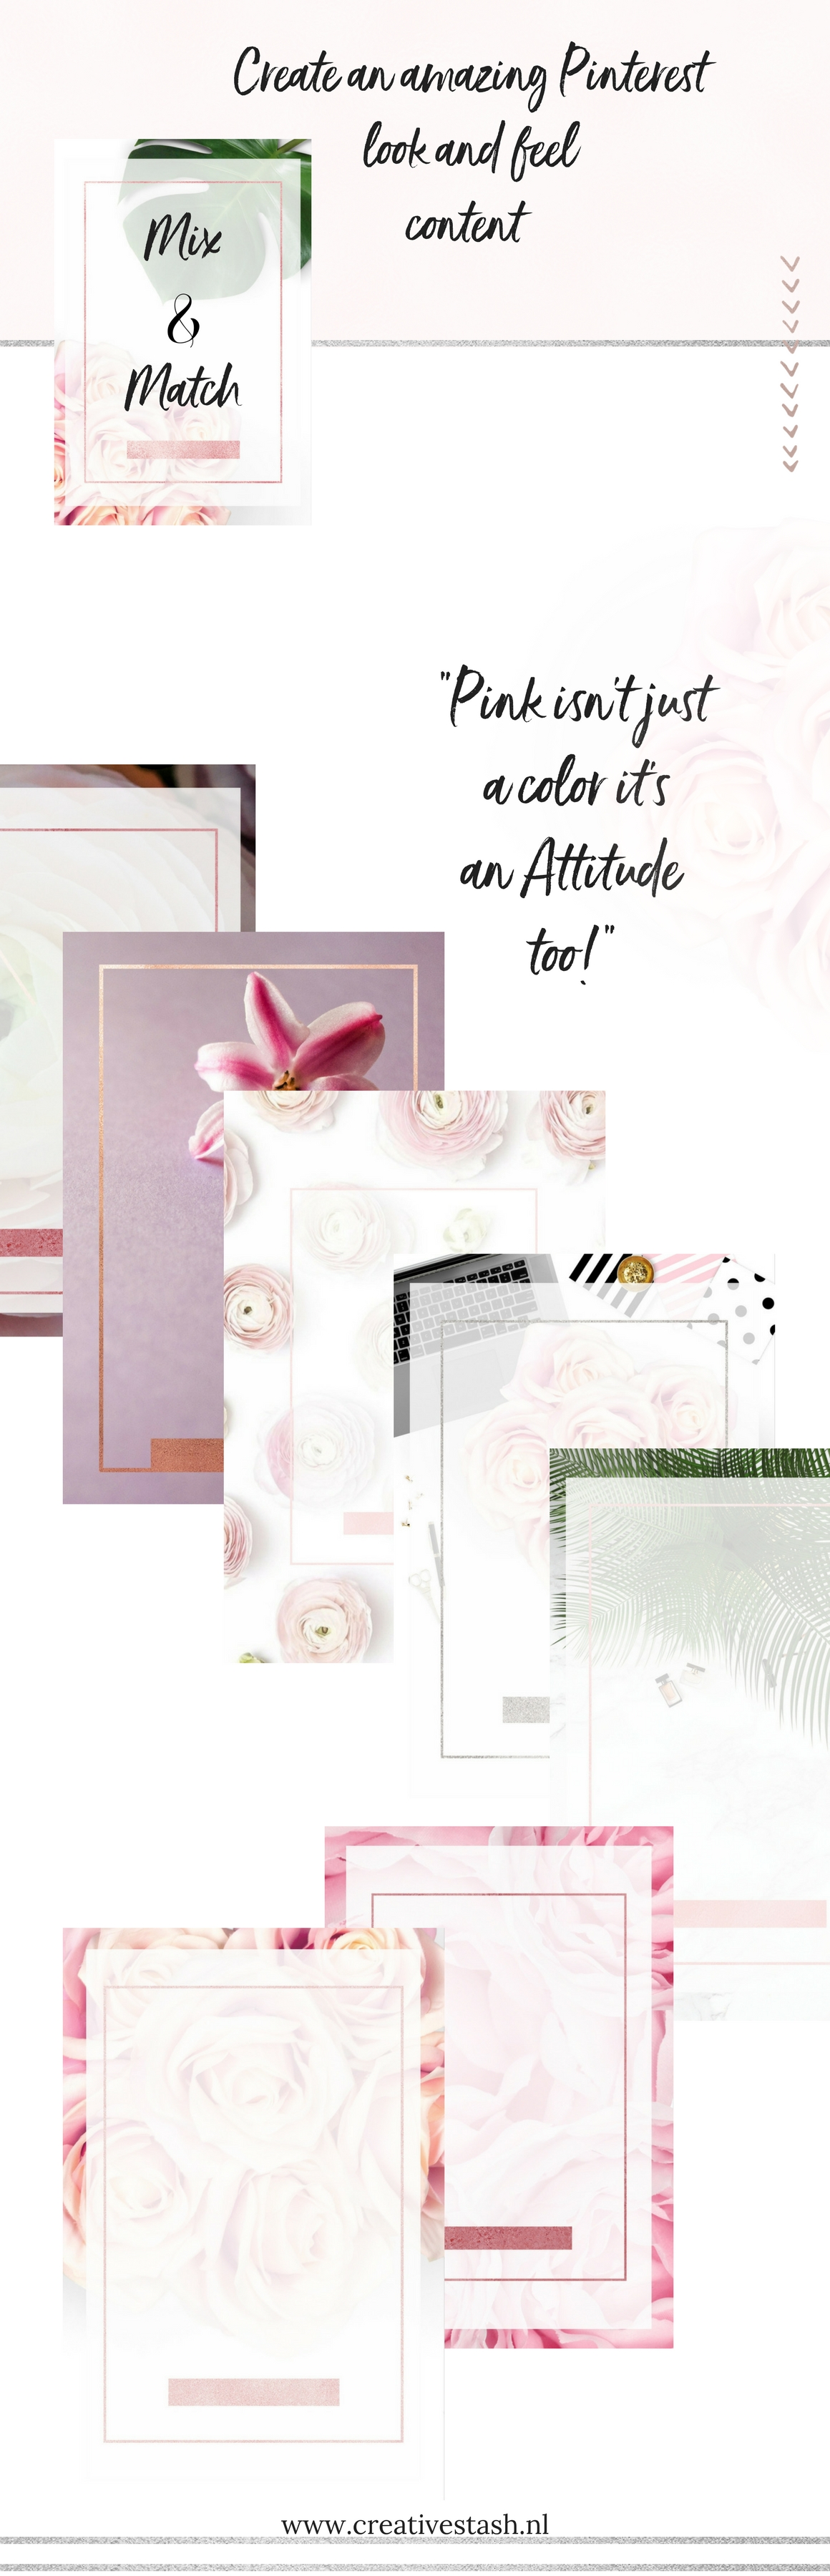 Pinterest templates- Pink passion example image 4